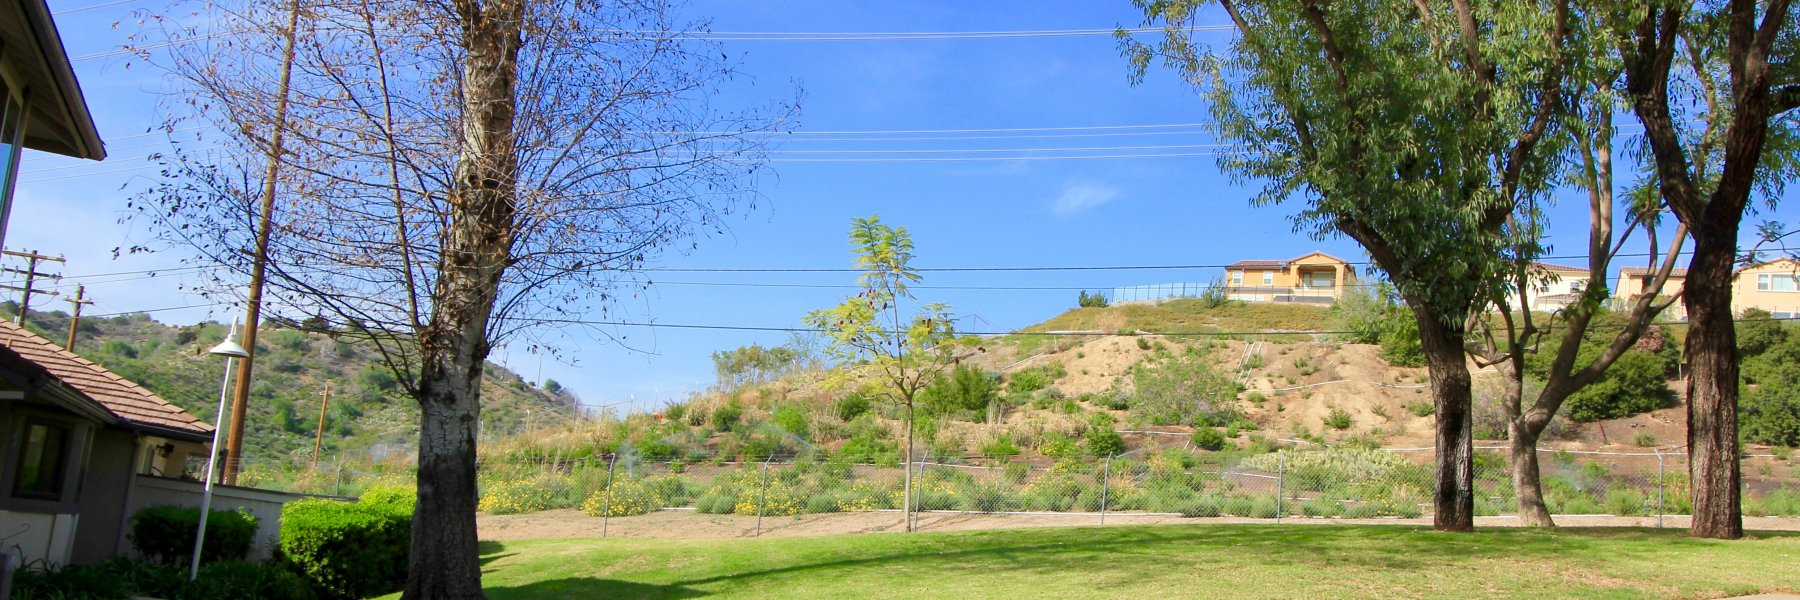 Sommerset is a community of attached homes in Brea California